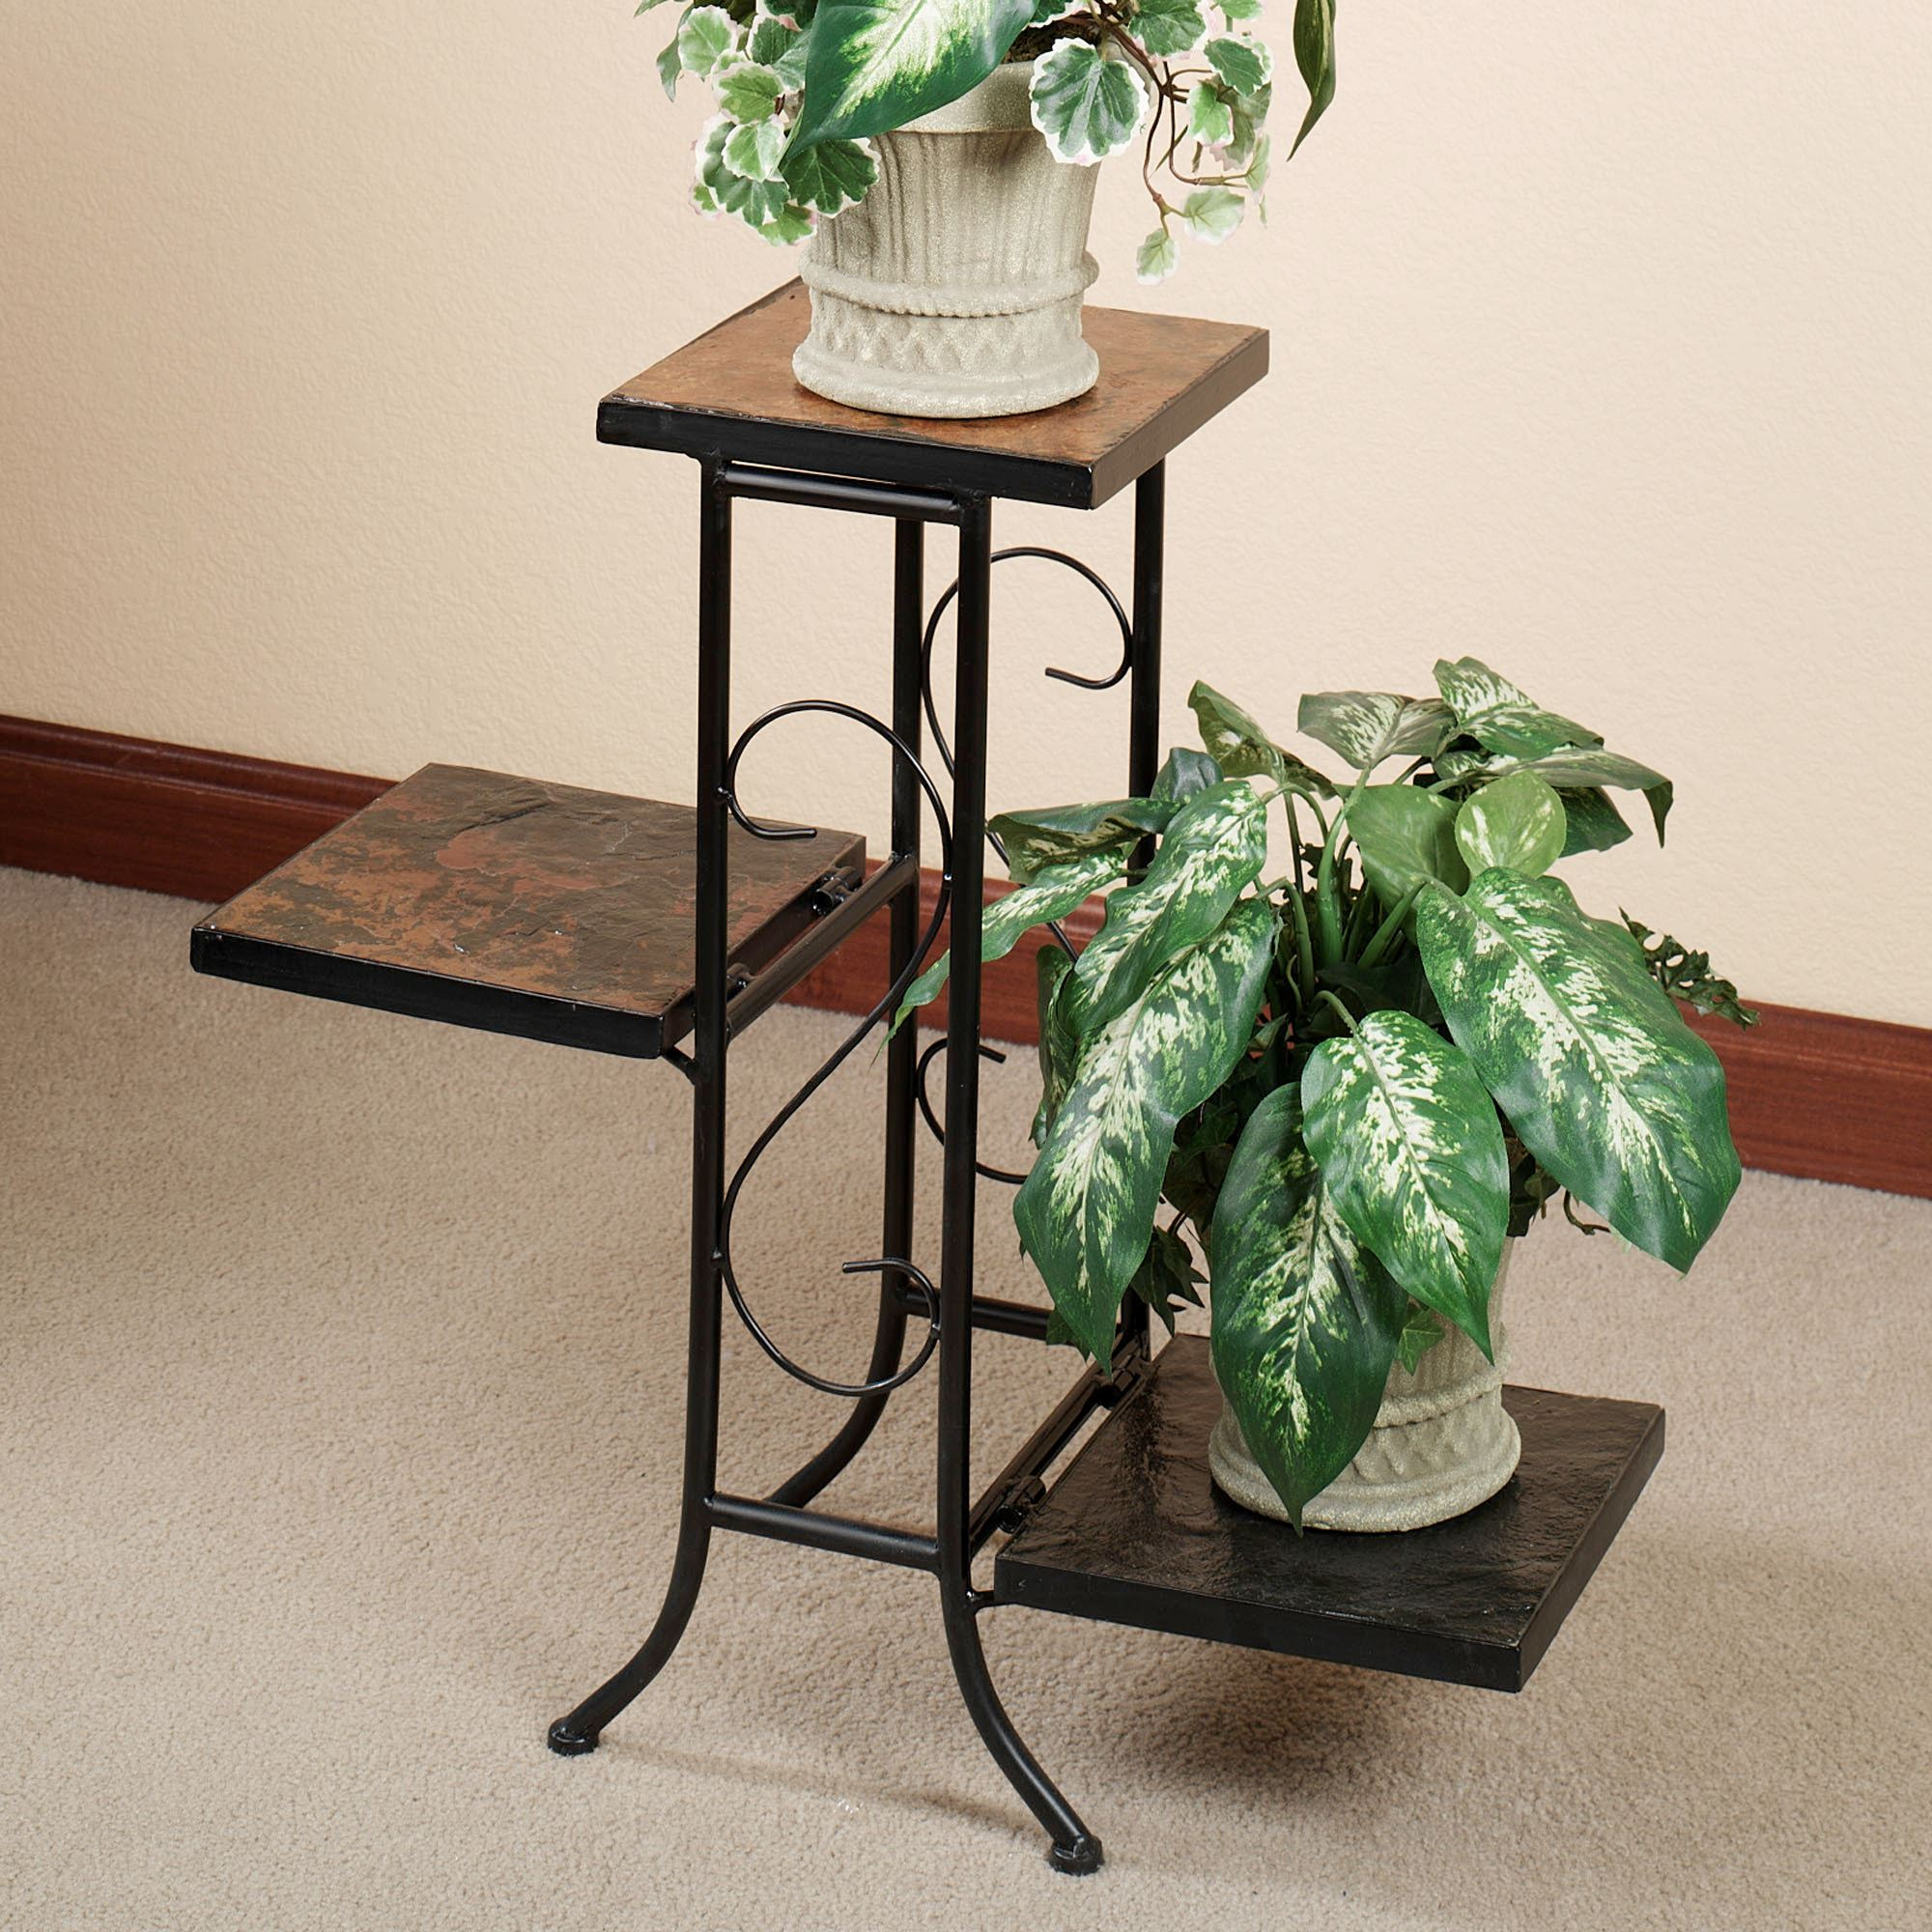 porterville indoor outdoor tiered plant stand accent table black touch zoom drop leaf sofa side clearance office furniture portland vintage dining dale tiffany stained glass lamp